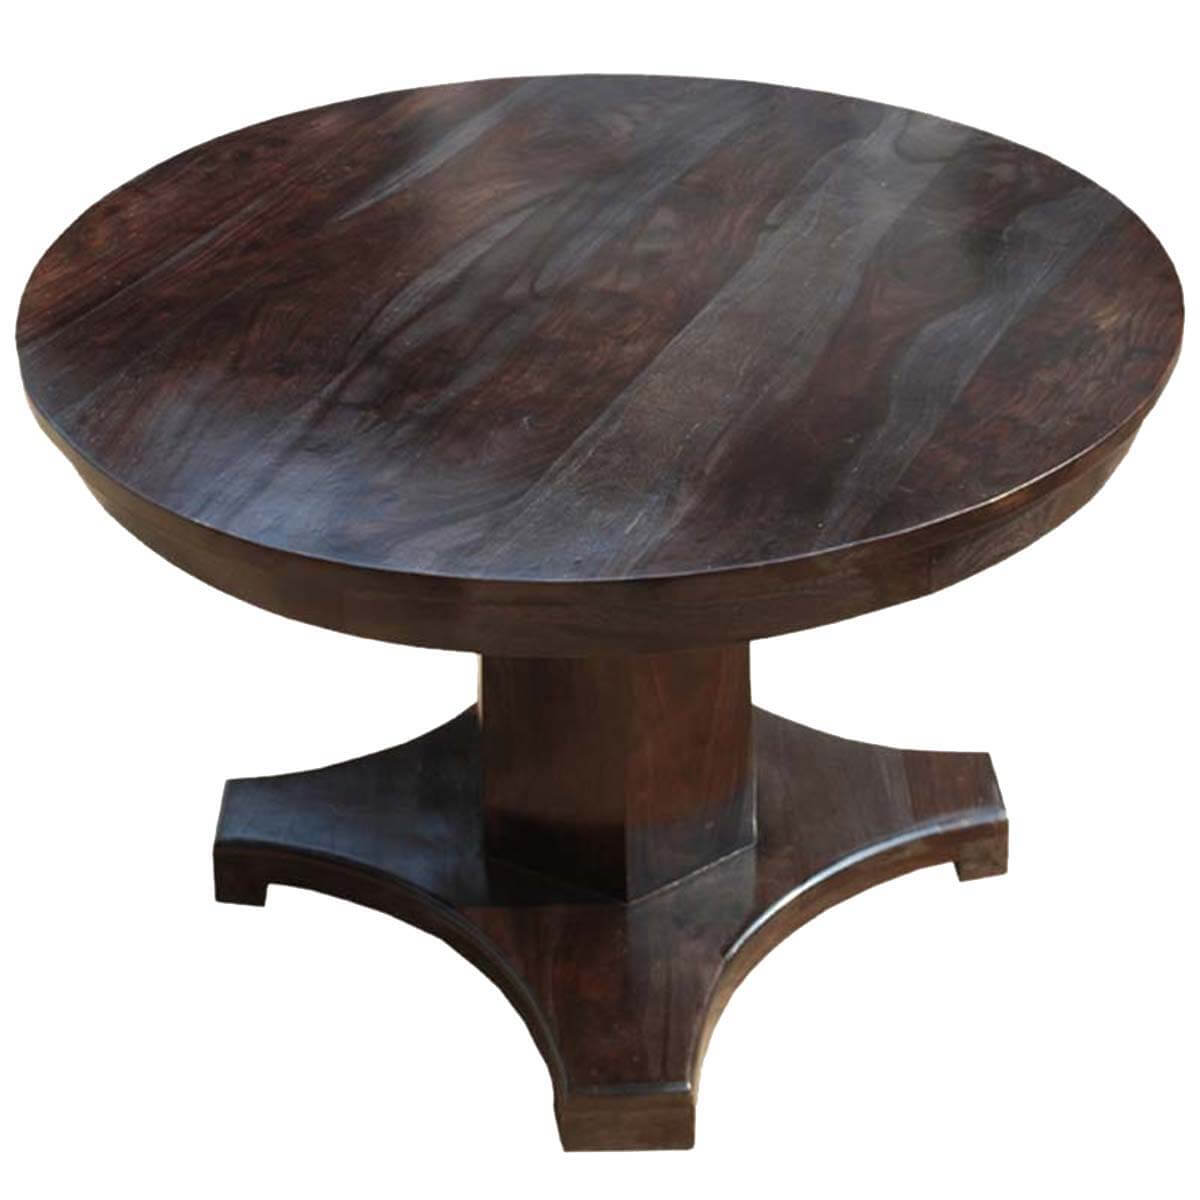 Solid wood sutton rustic round pedestal dining table for 4 for Solid wood round tables dining